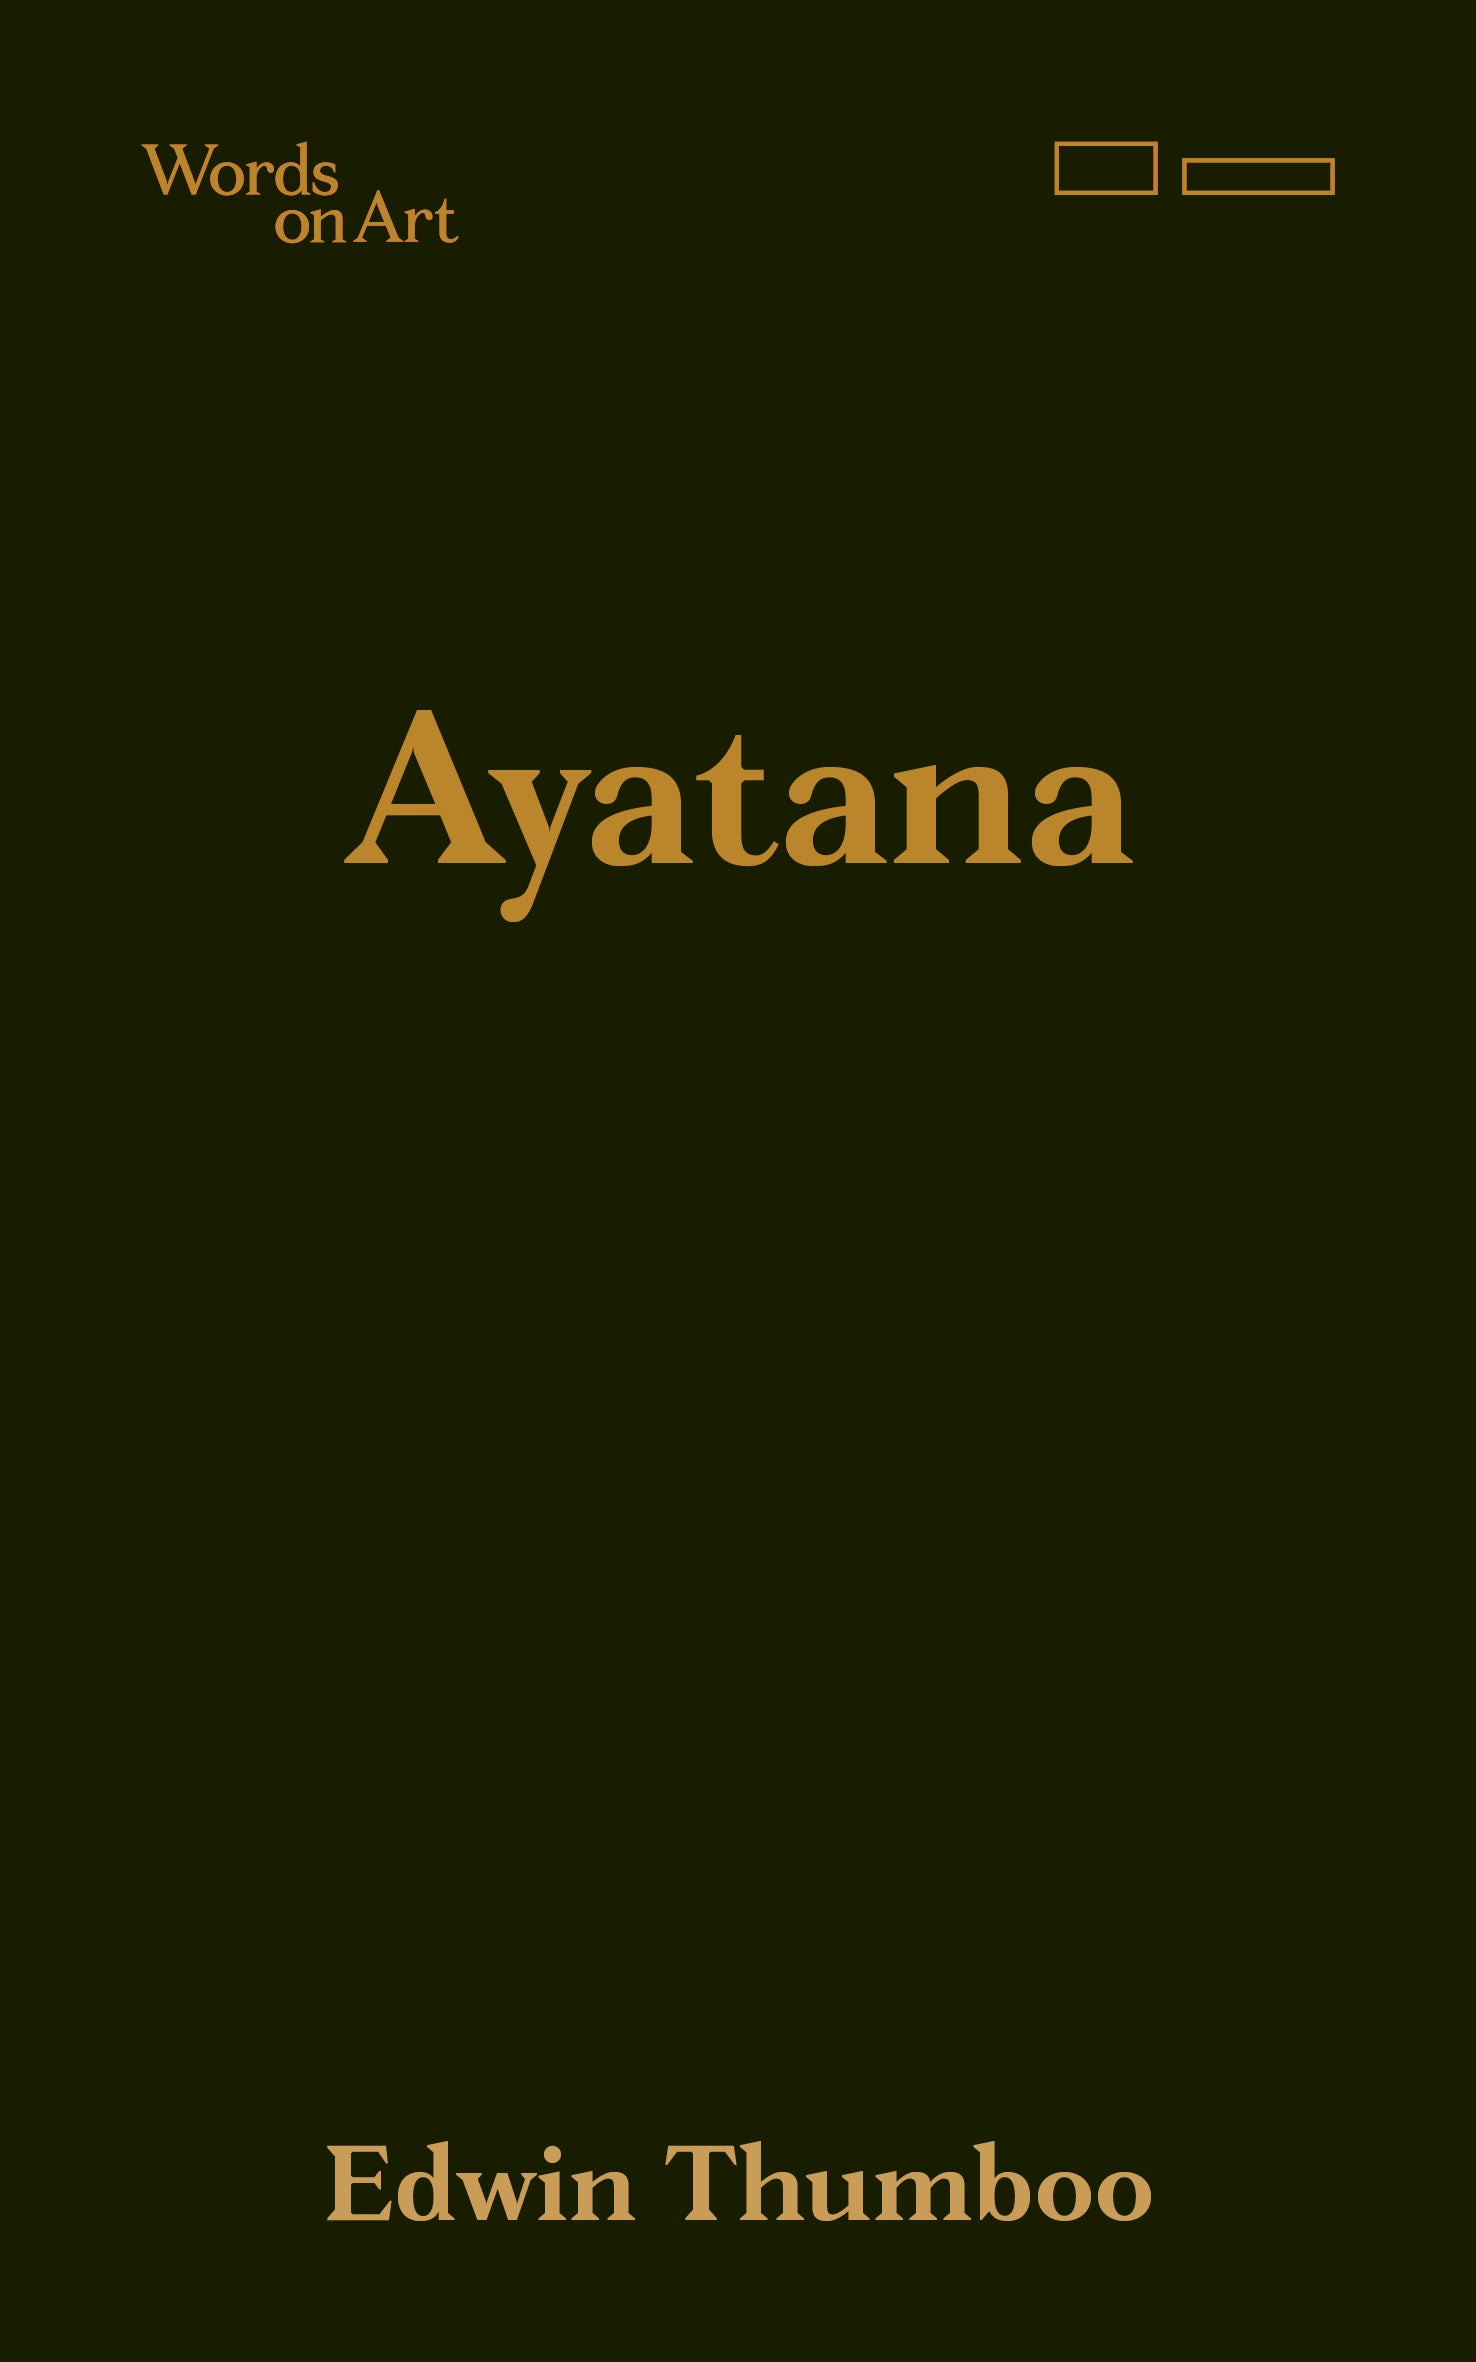 Words on Art: Ayatana